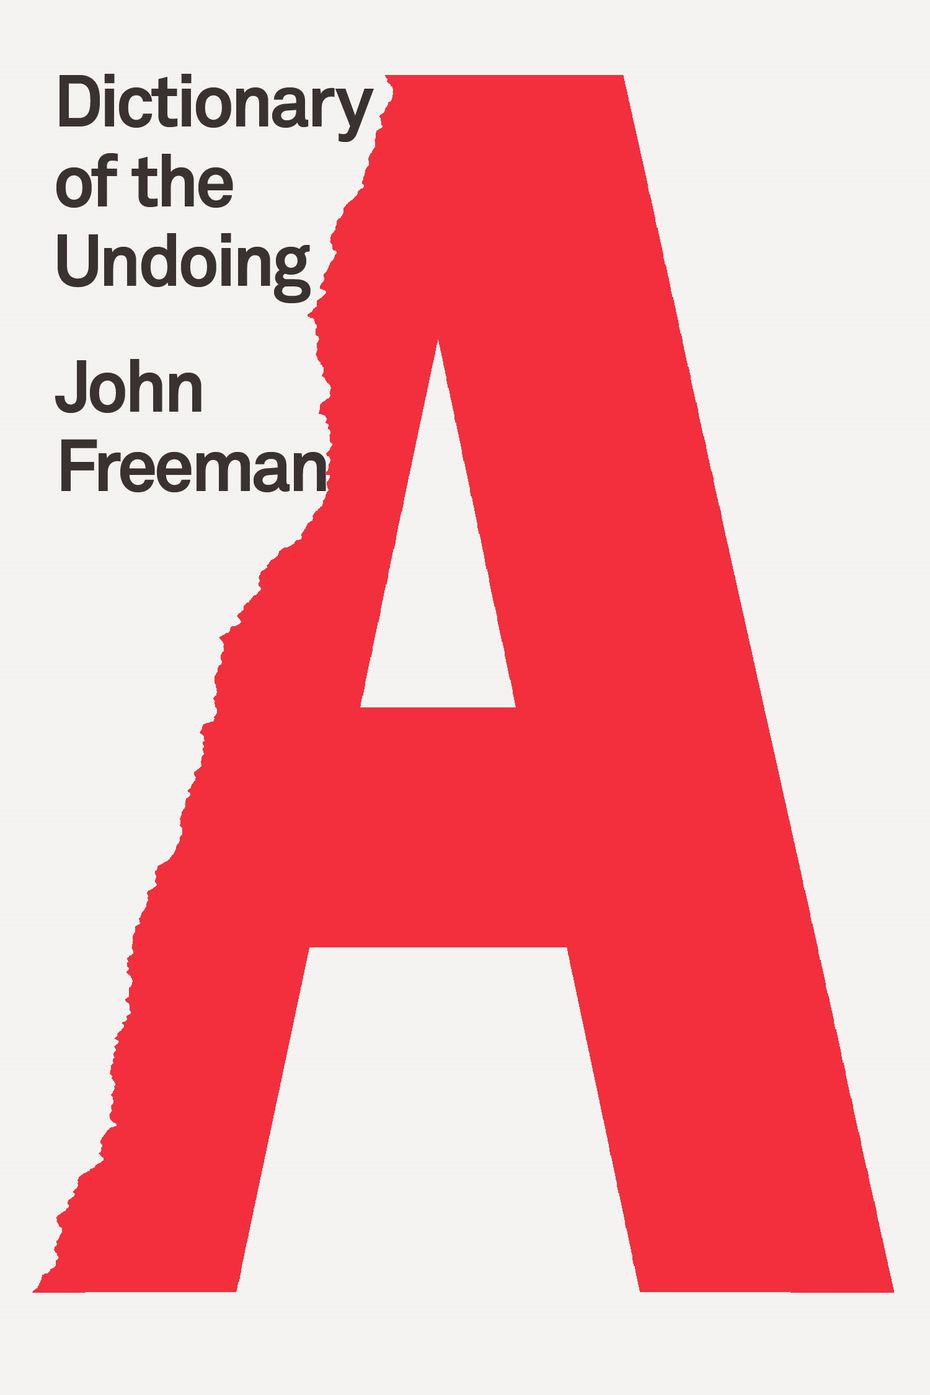 'Dictionary of the Undoing' is the latest book by author John Freeman.